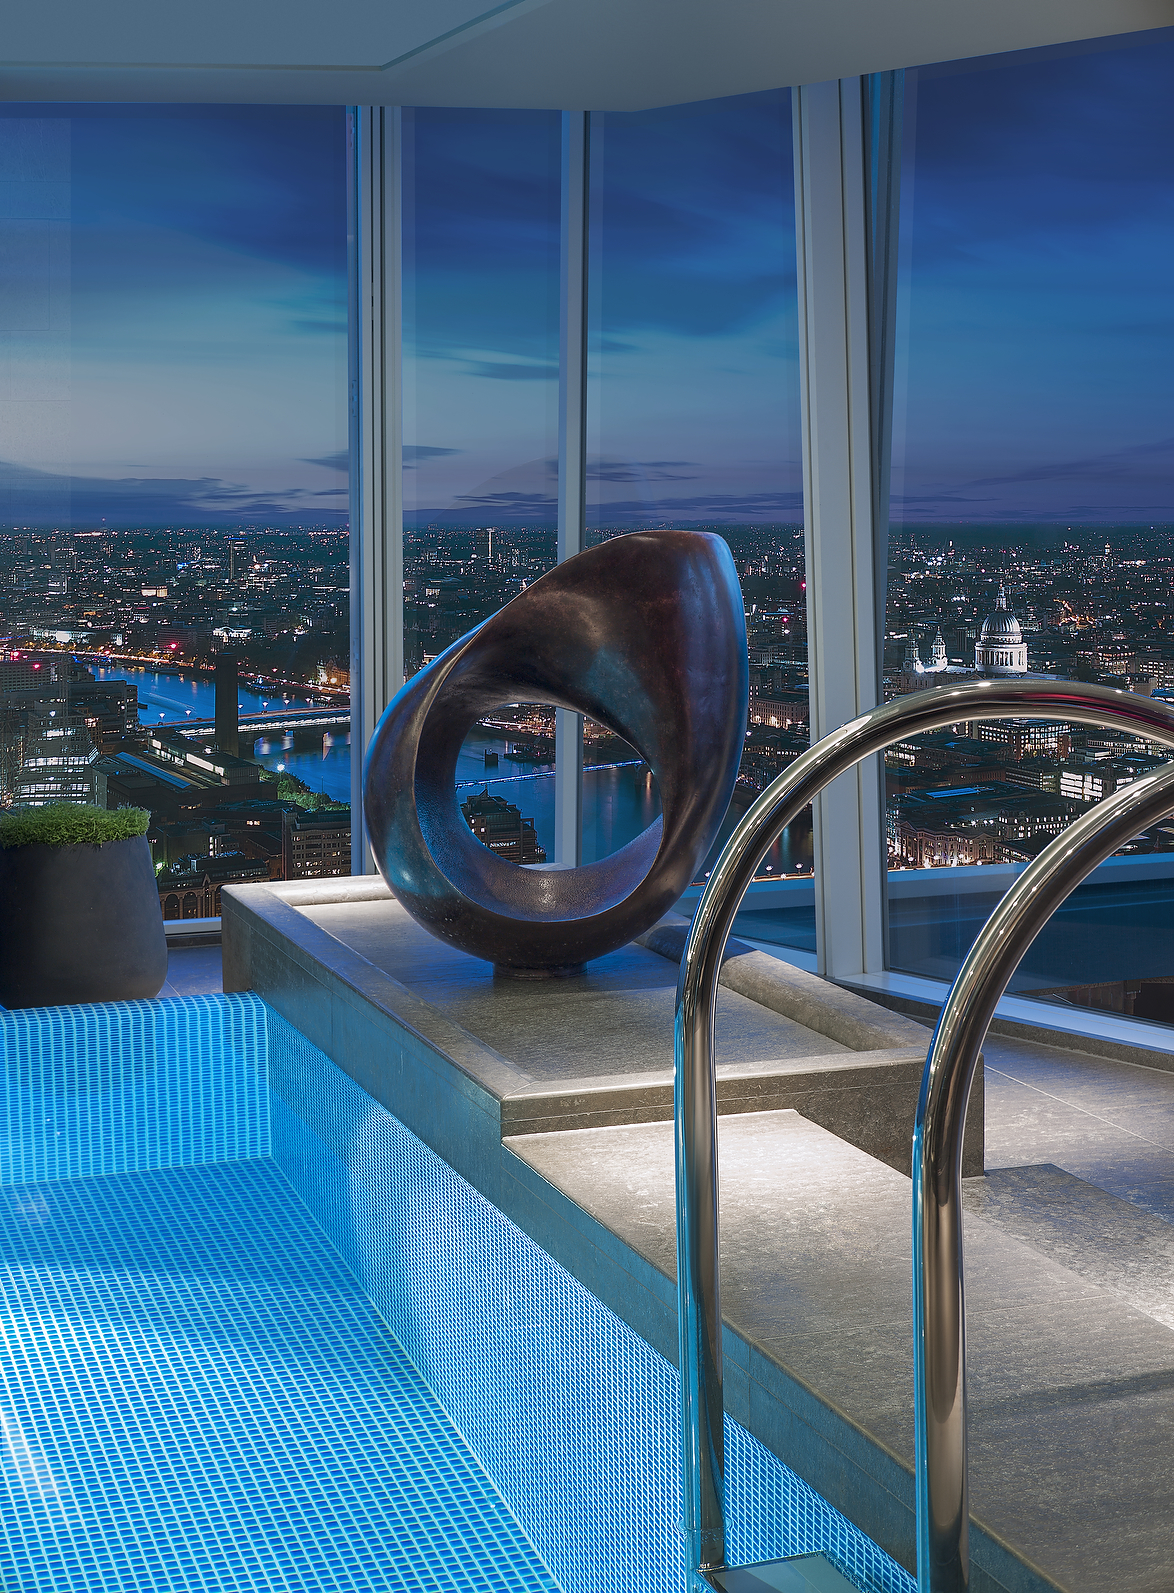 Sculpture by the Skypool - Shangri-La Hotel, At The Shard, London